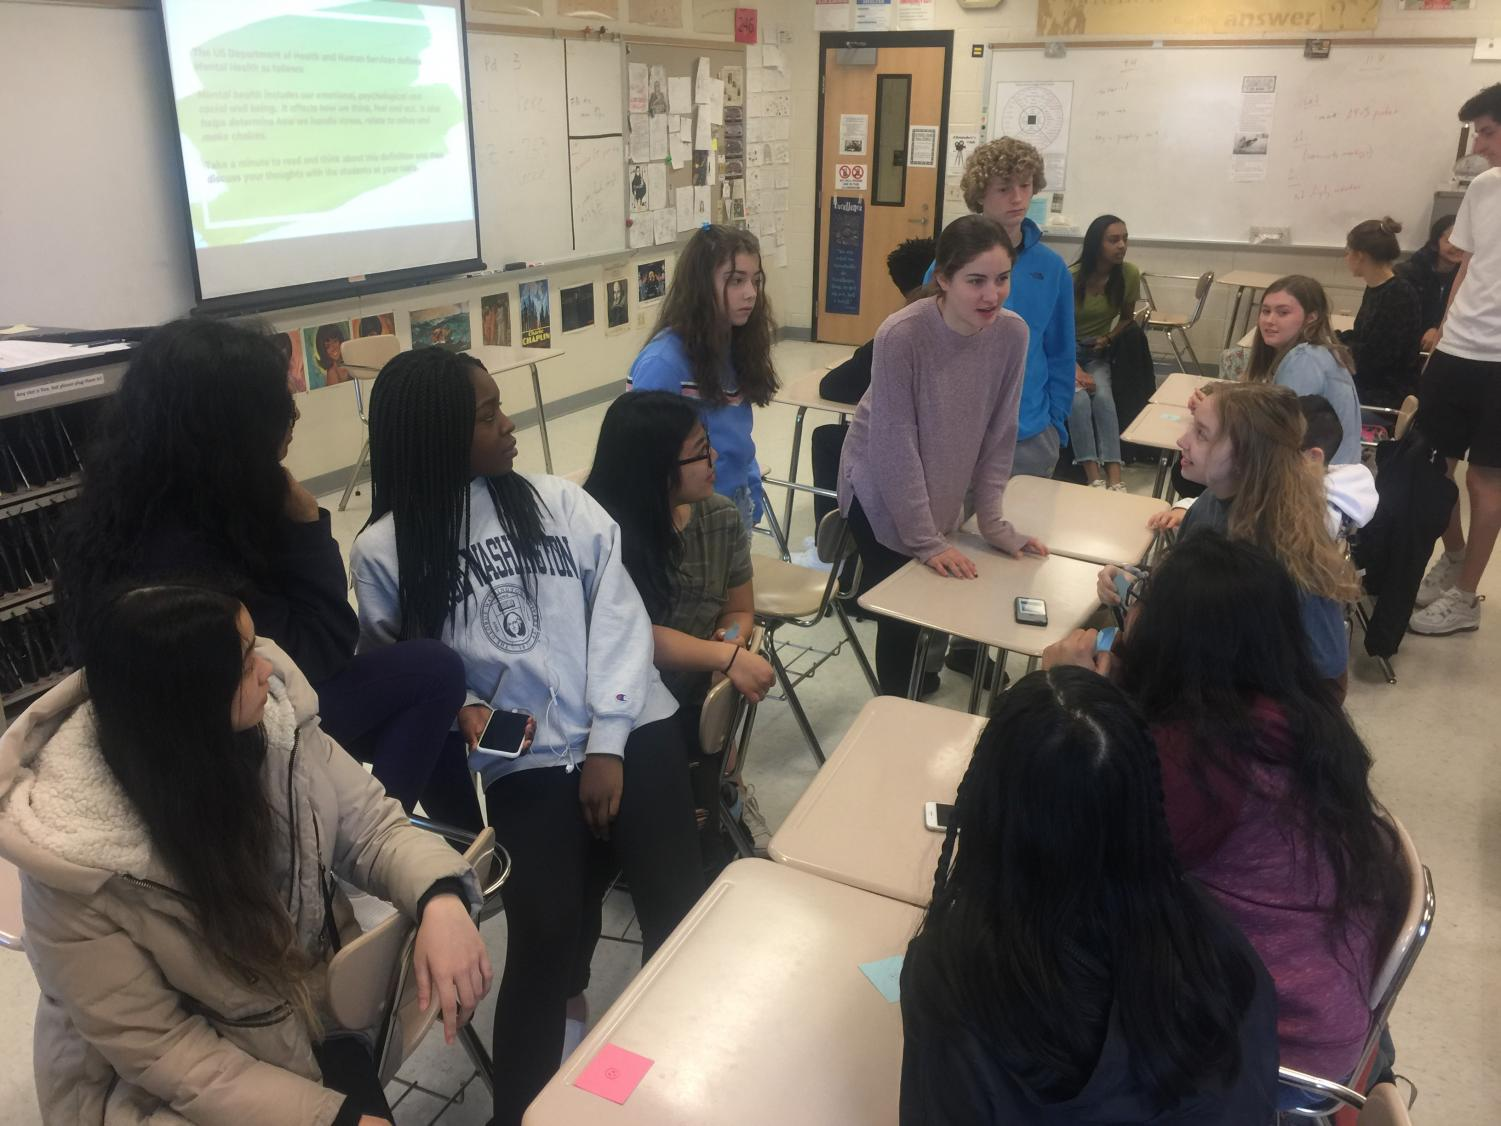 Students engage in meaningful discussion.